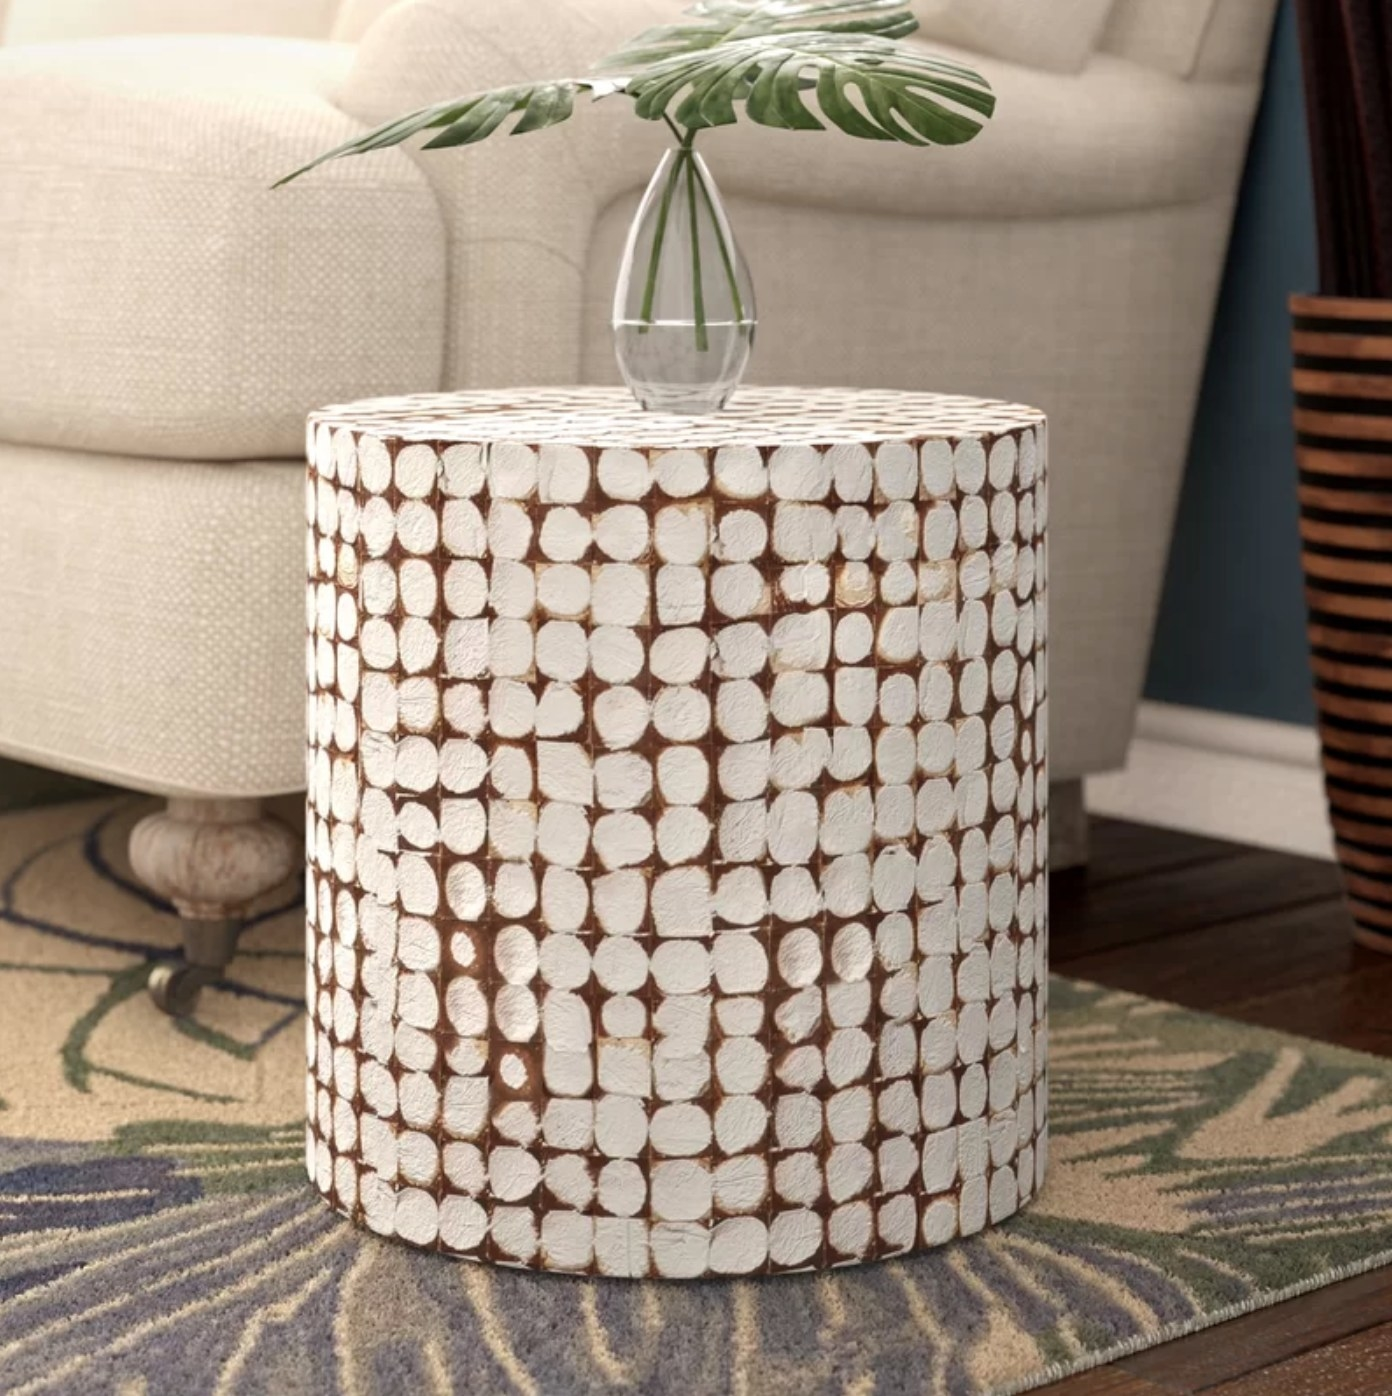 The end table in white and rust